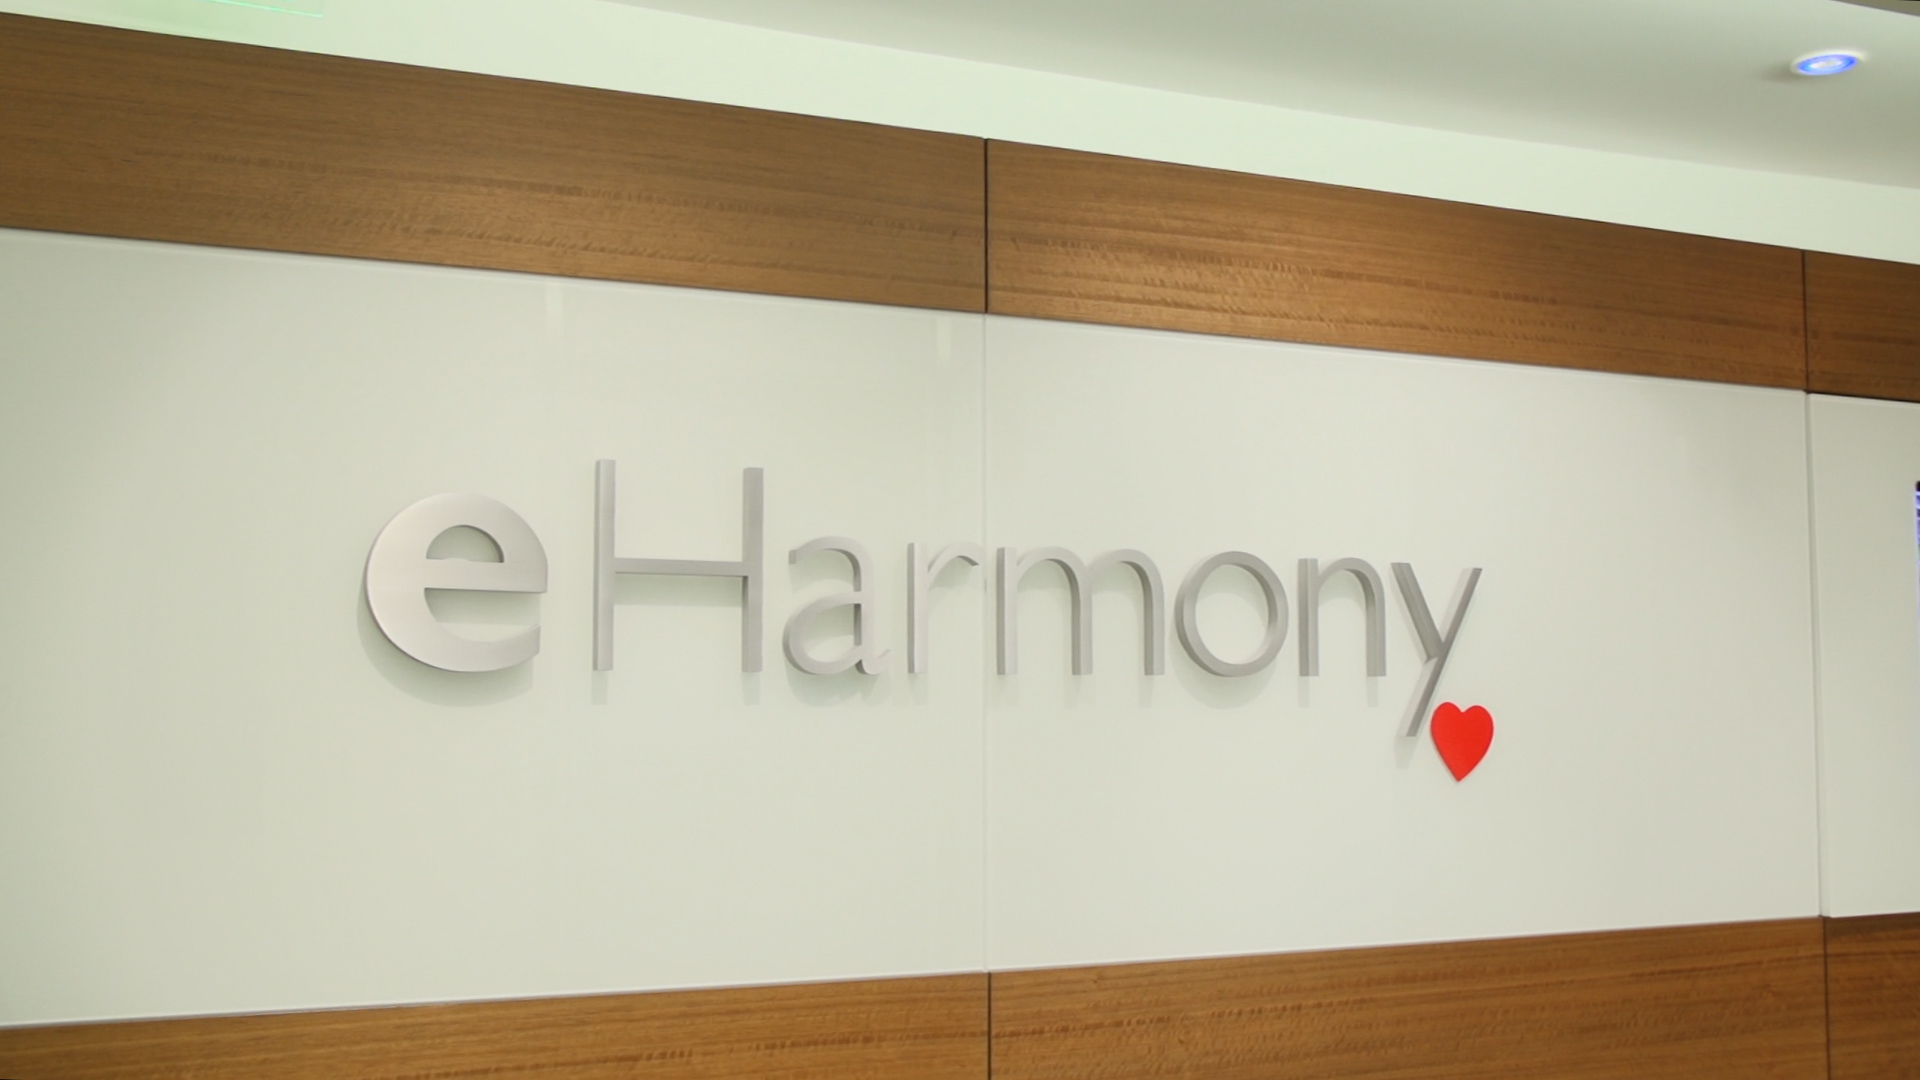 At eHarmony's HQ Love is Definitely in the Air